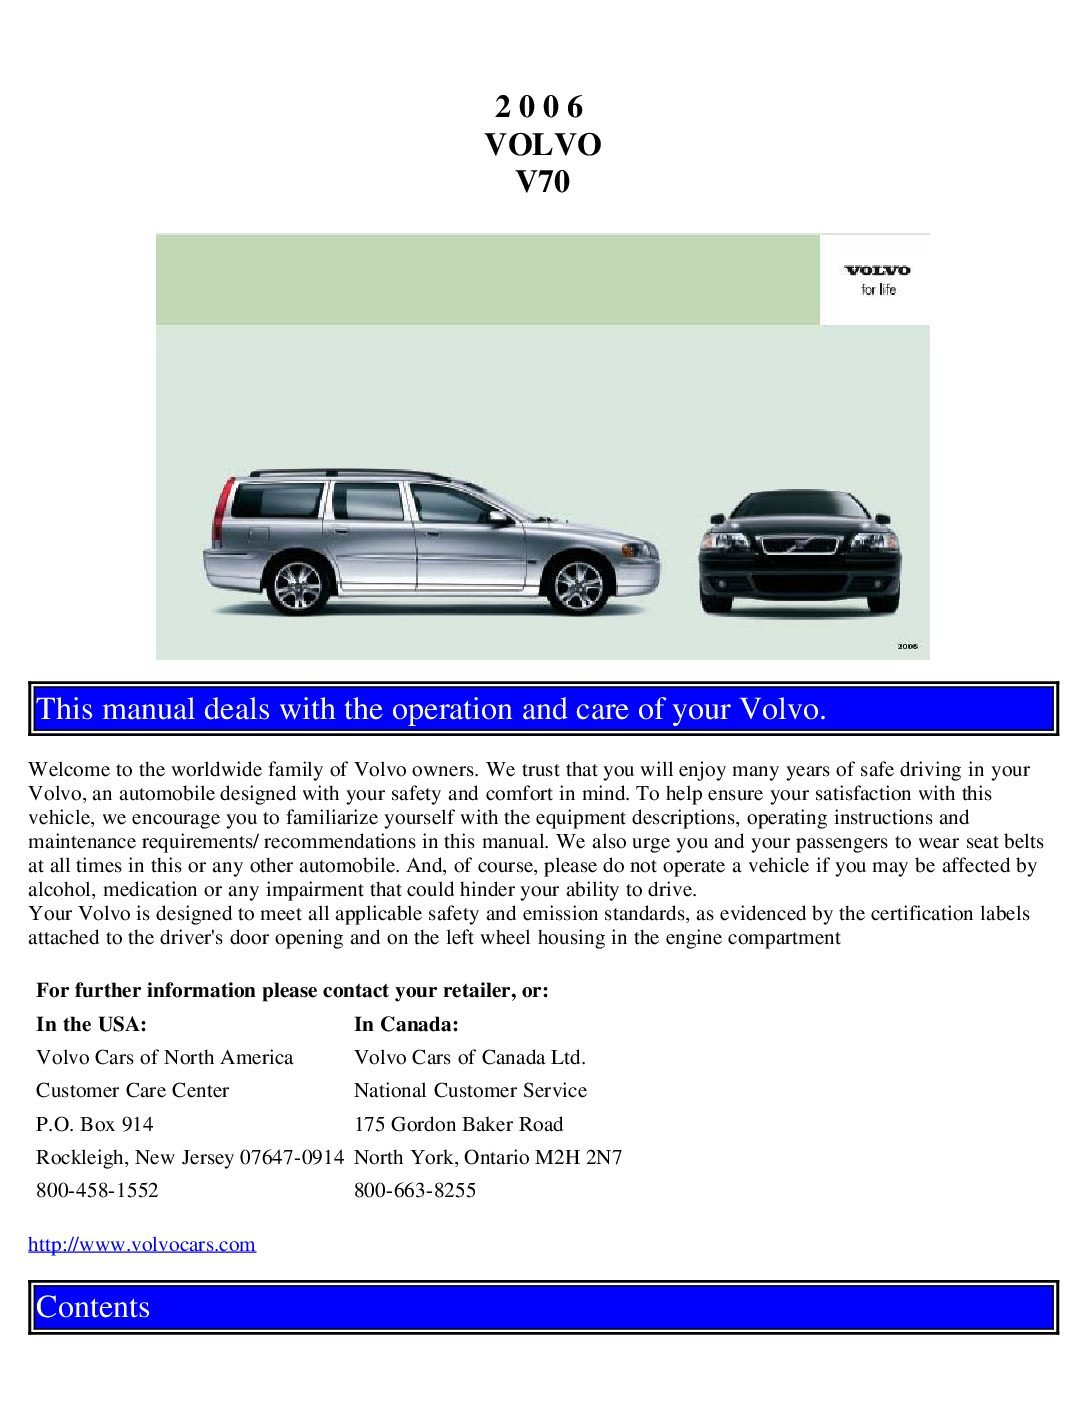 2002 volvo v70 owners manual